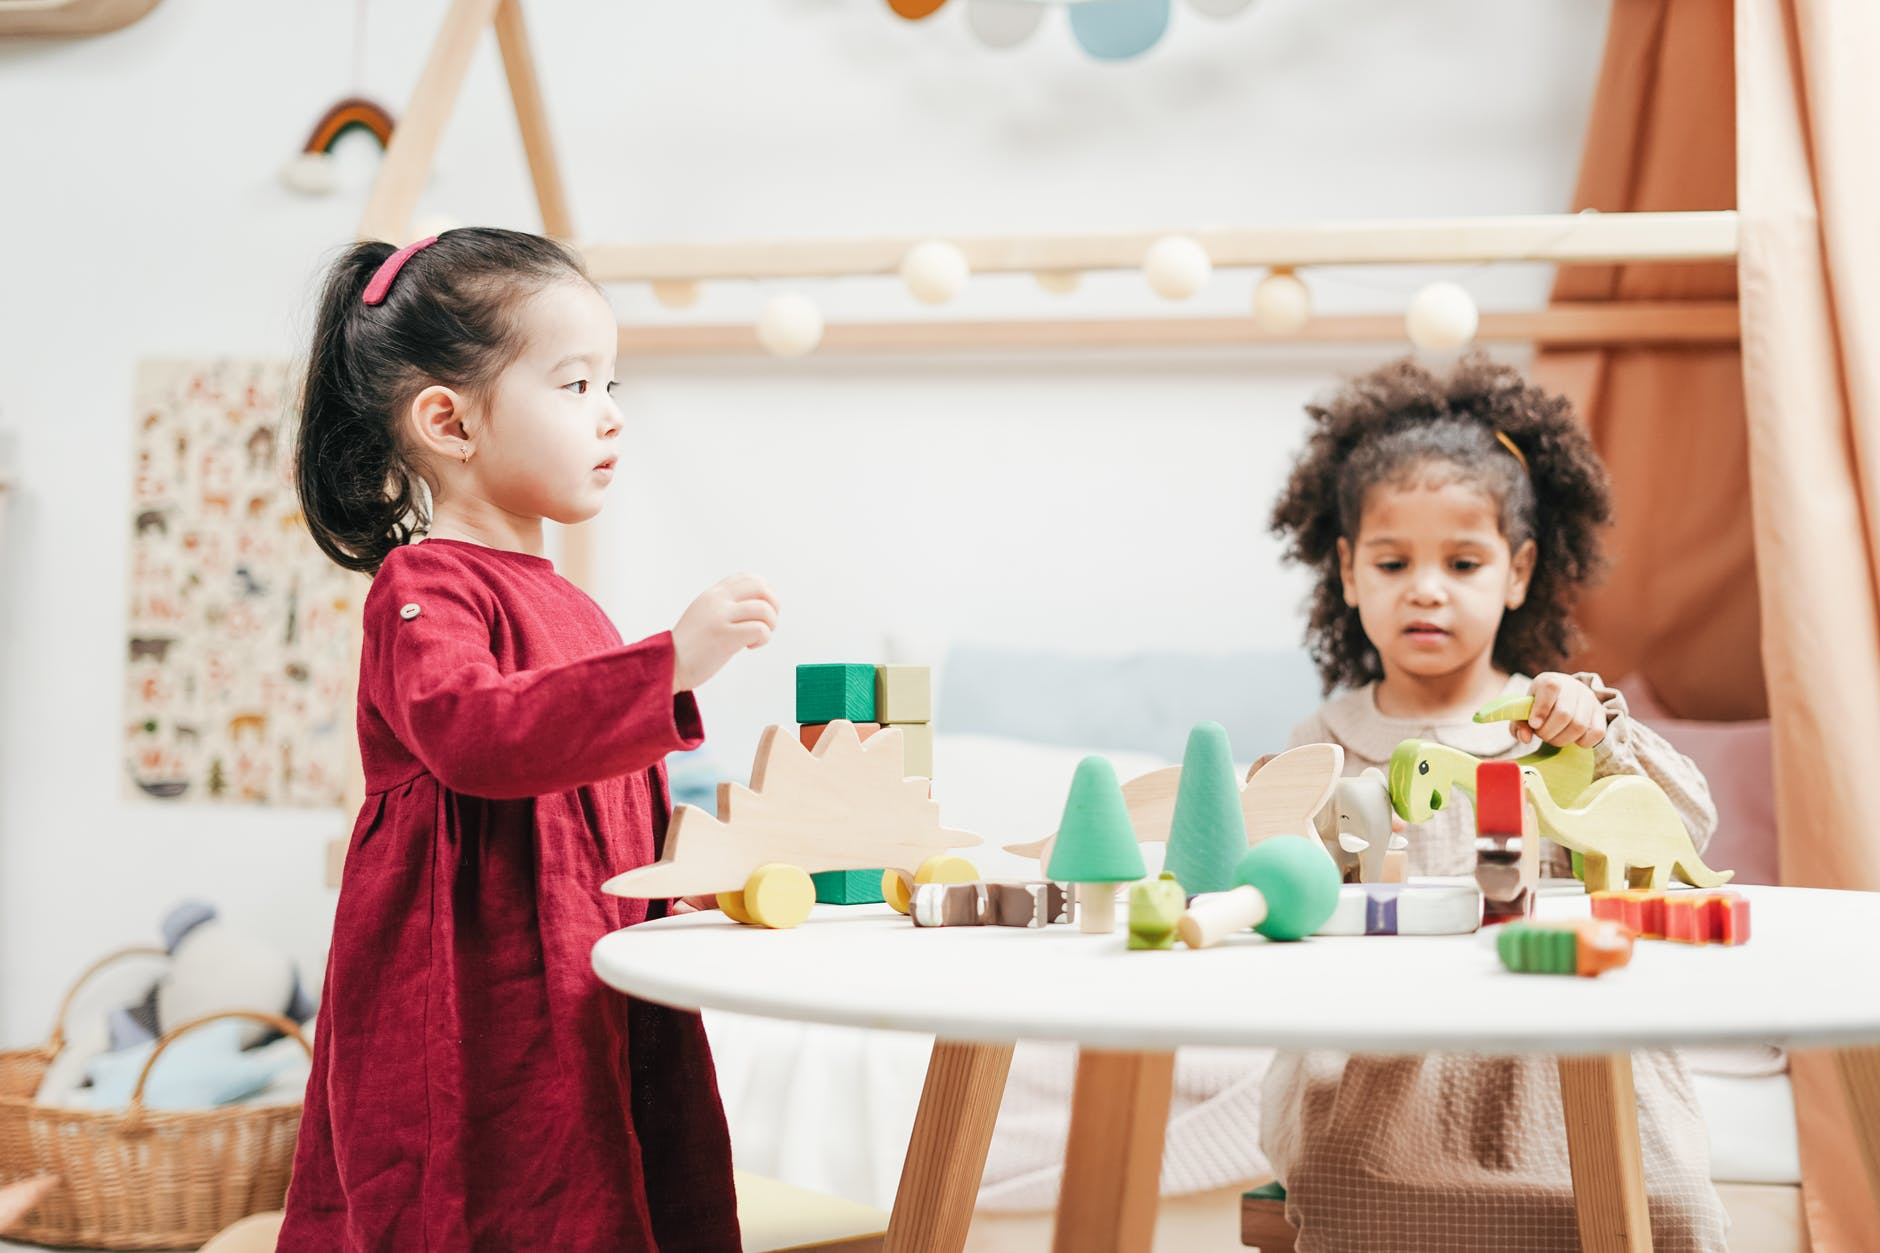 Two girls are playing with their toys. placed on a table. The toys include blocks of various colours, such as cyan, blue, and white, cones, as well as dinosaur figurines.